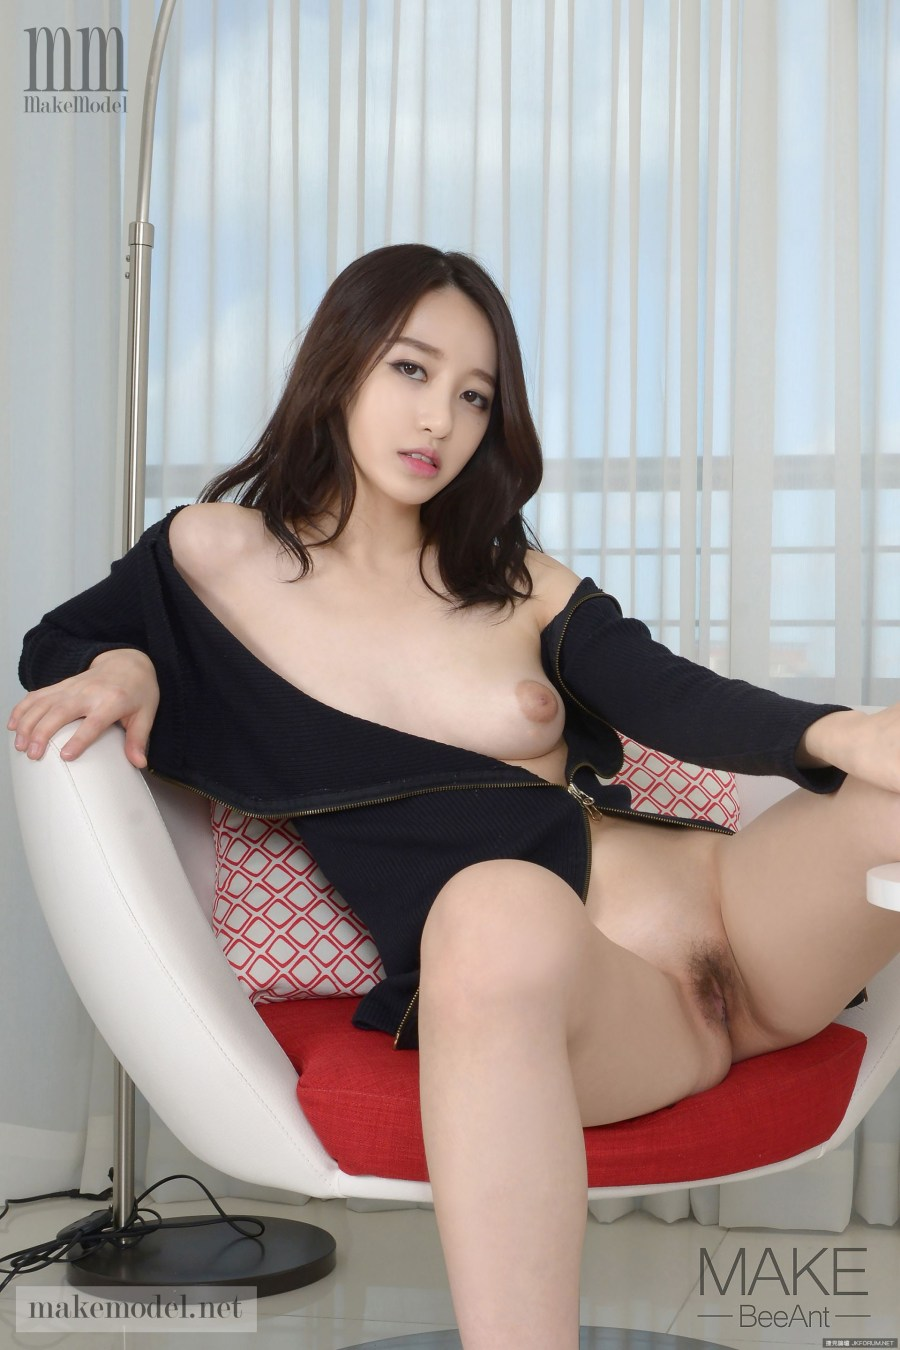 Sexy Teen Korean On Pornsite Pic - Nude Photos-3352